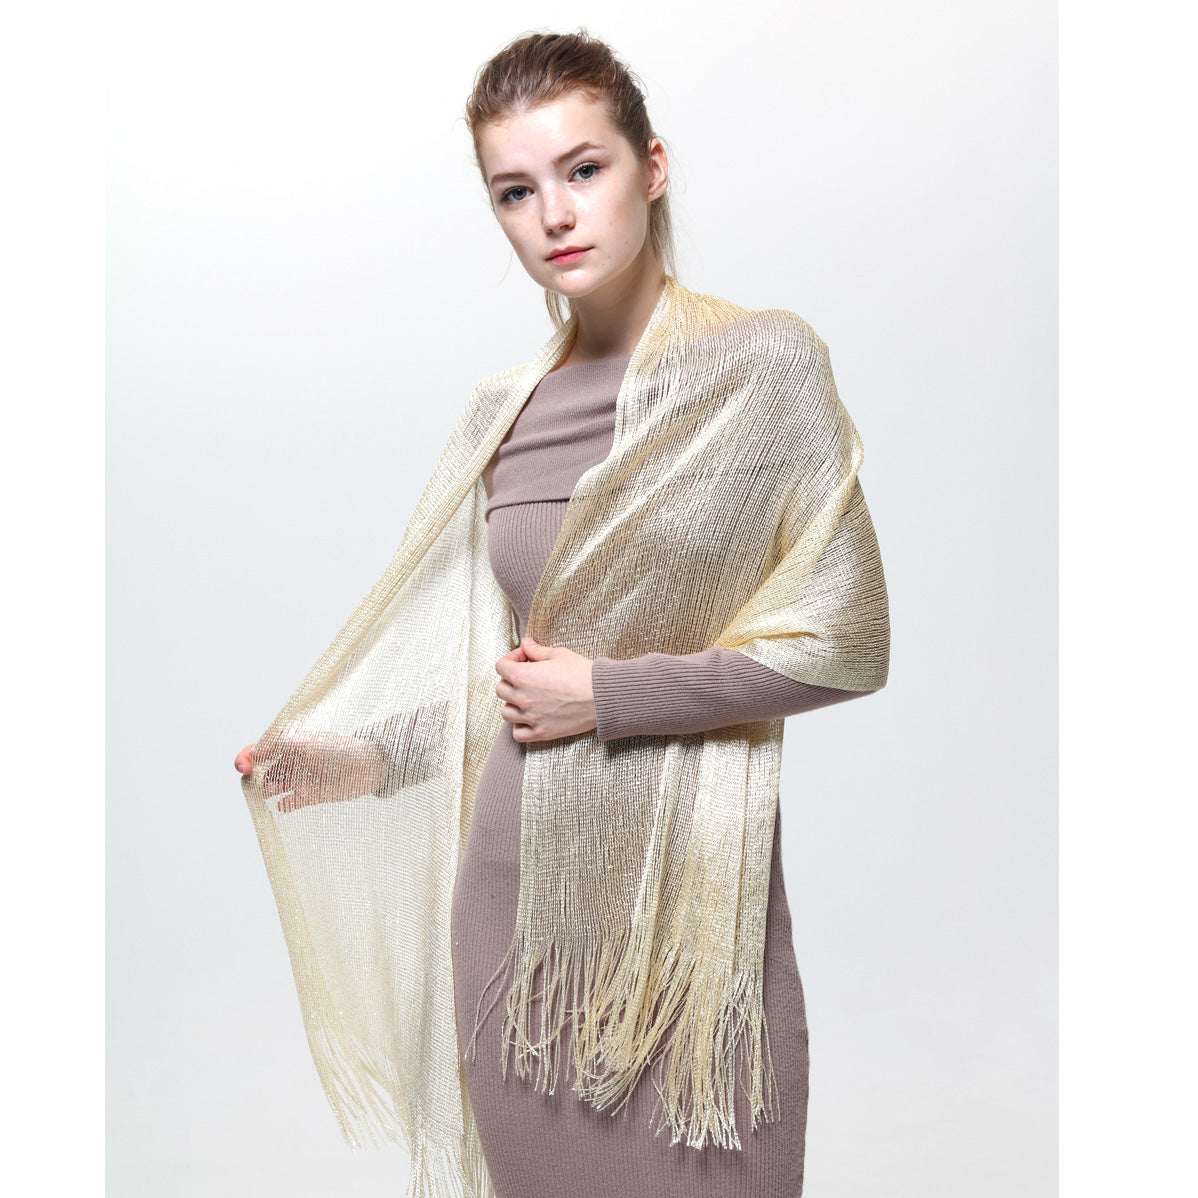 AM23118-15 Lurex Sheer Metallic Evening Scarf  Cream